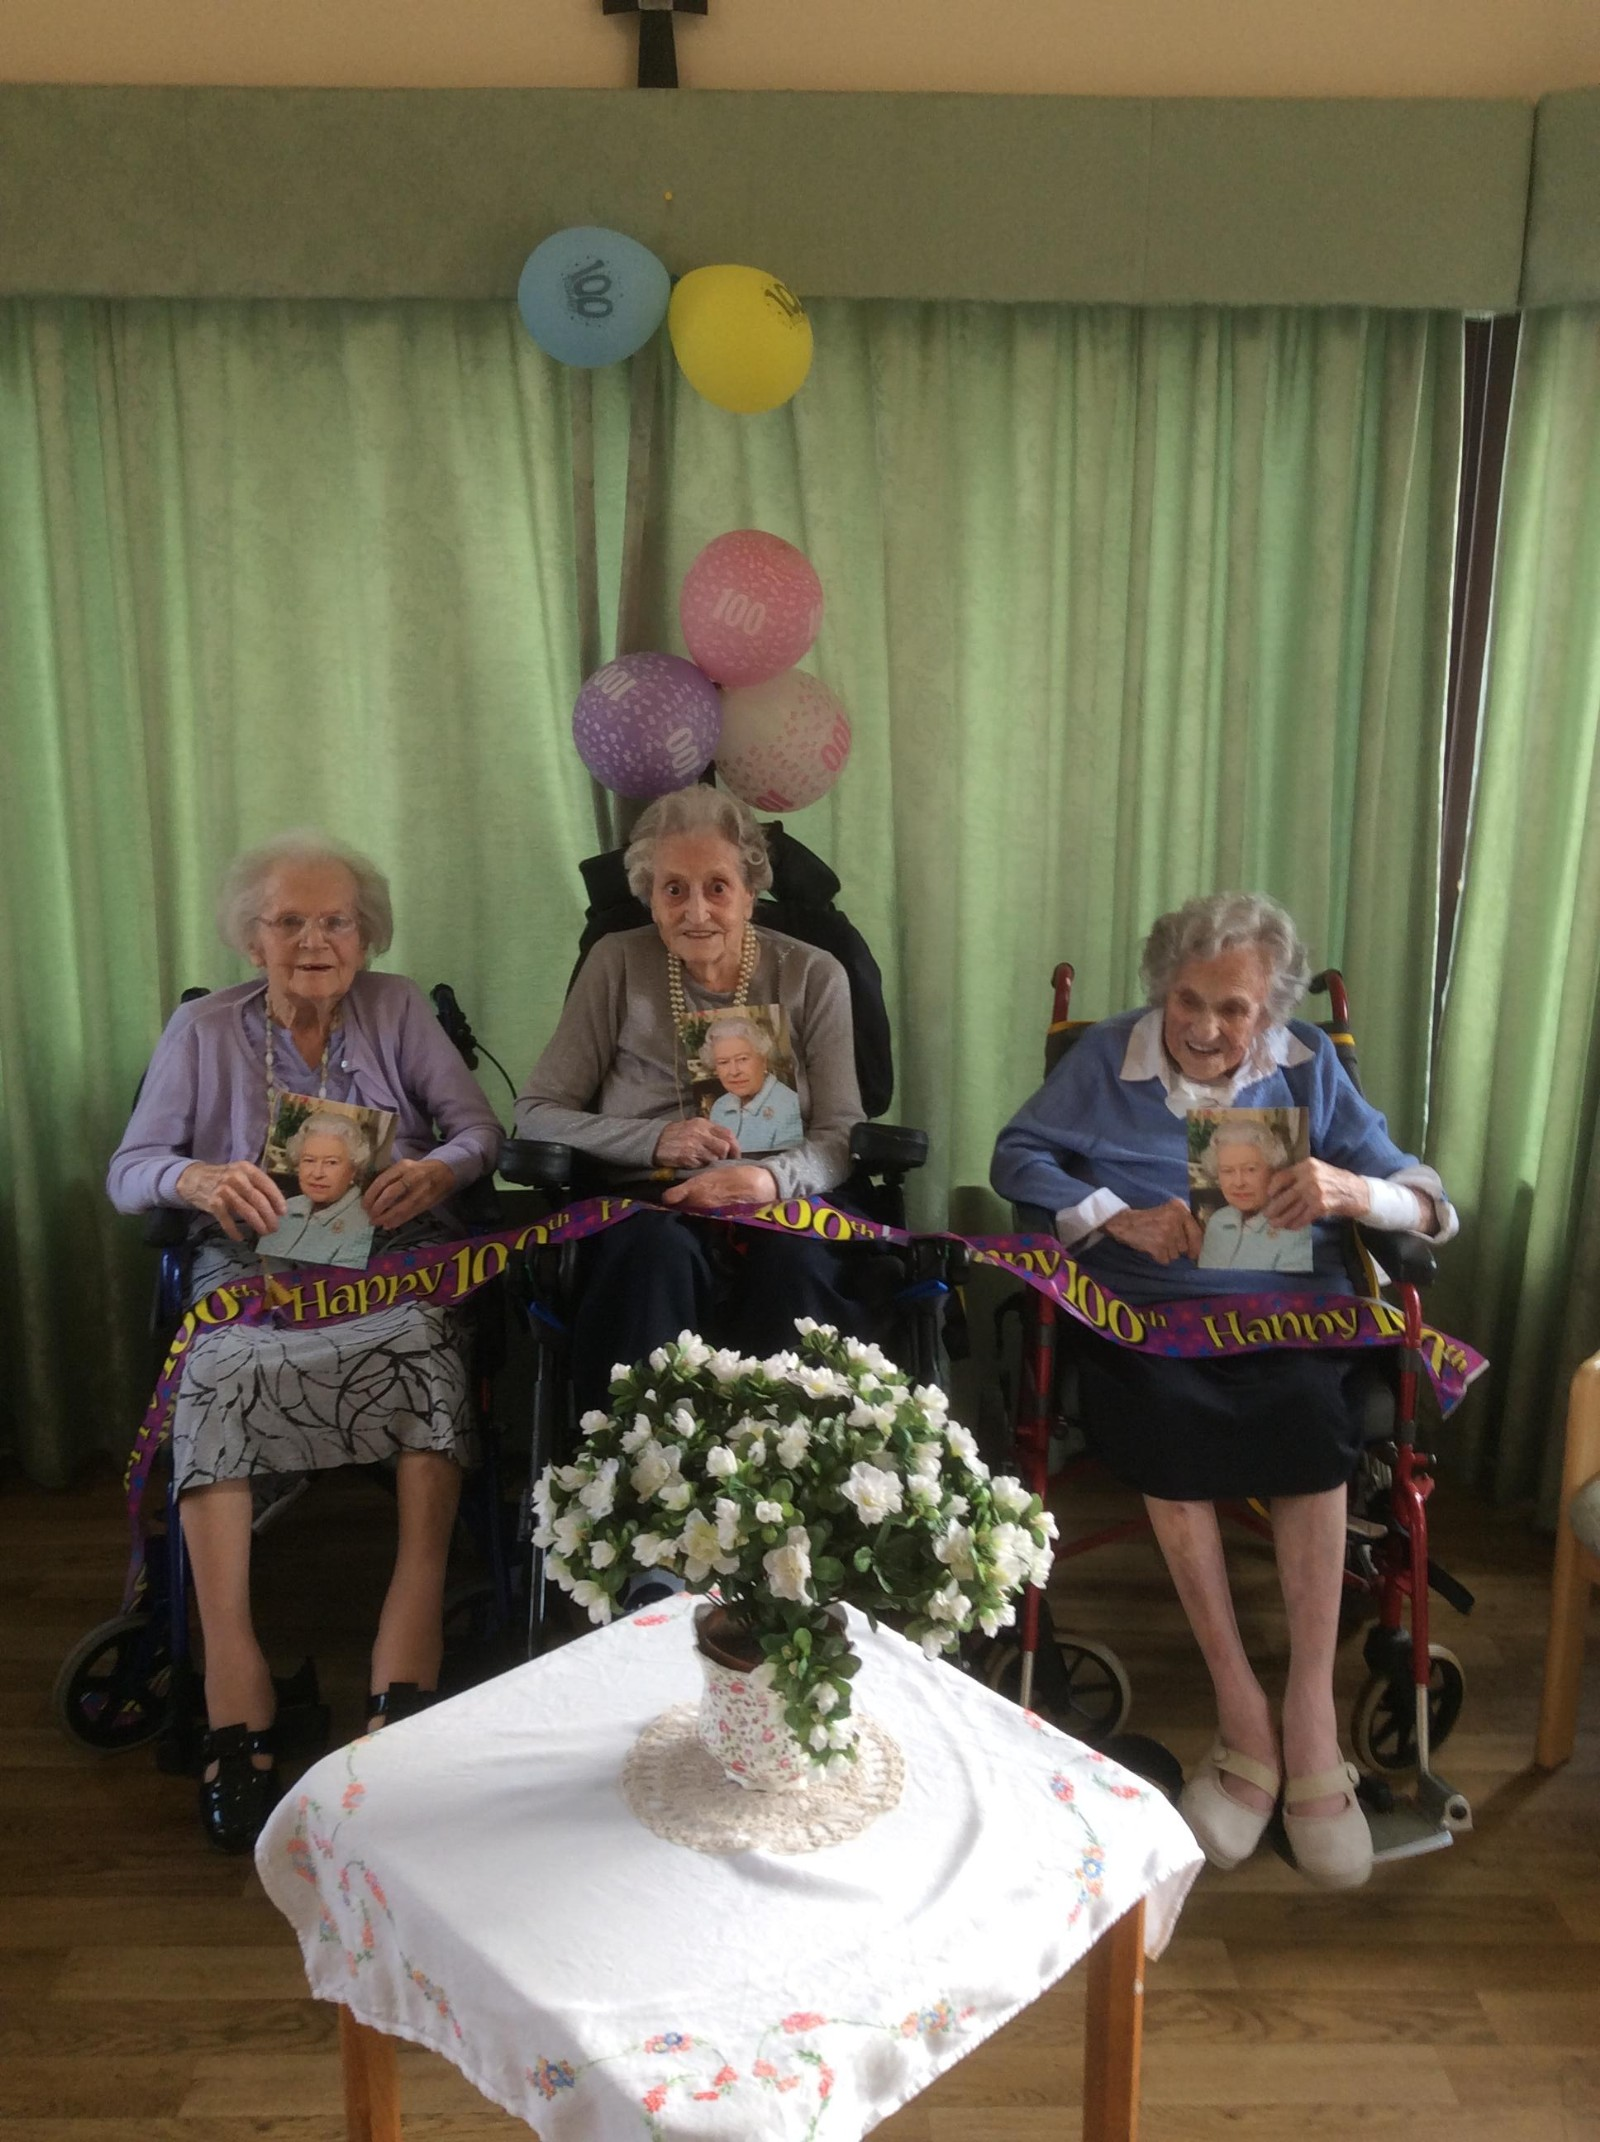 Peggy, 101, Agnes, 100, and Joan, 102, pose for a 'Roya